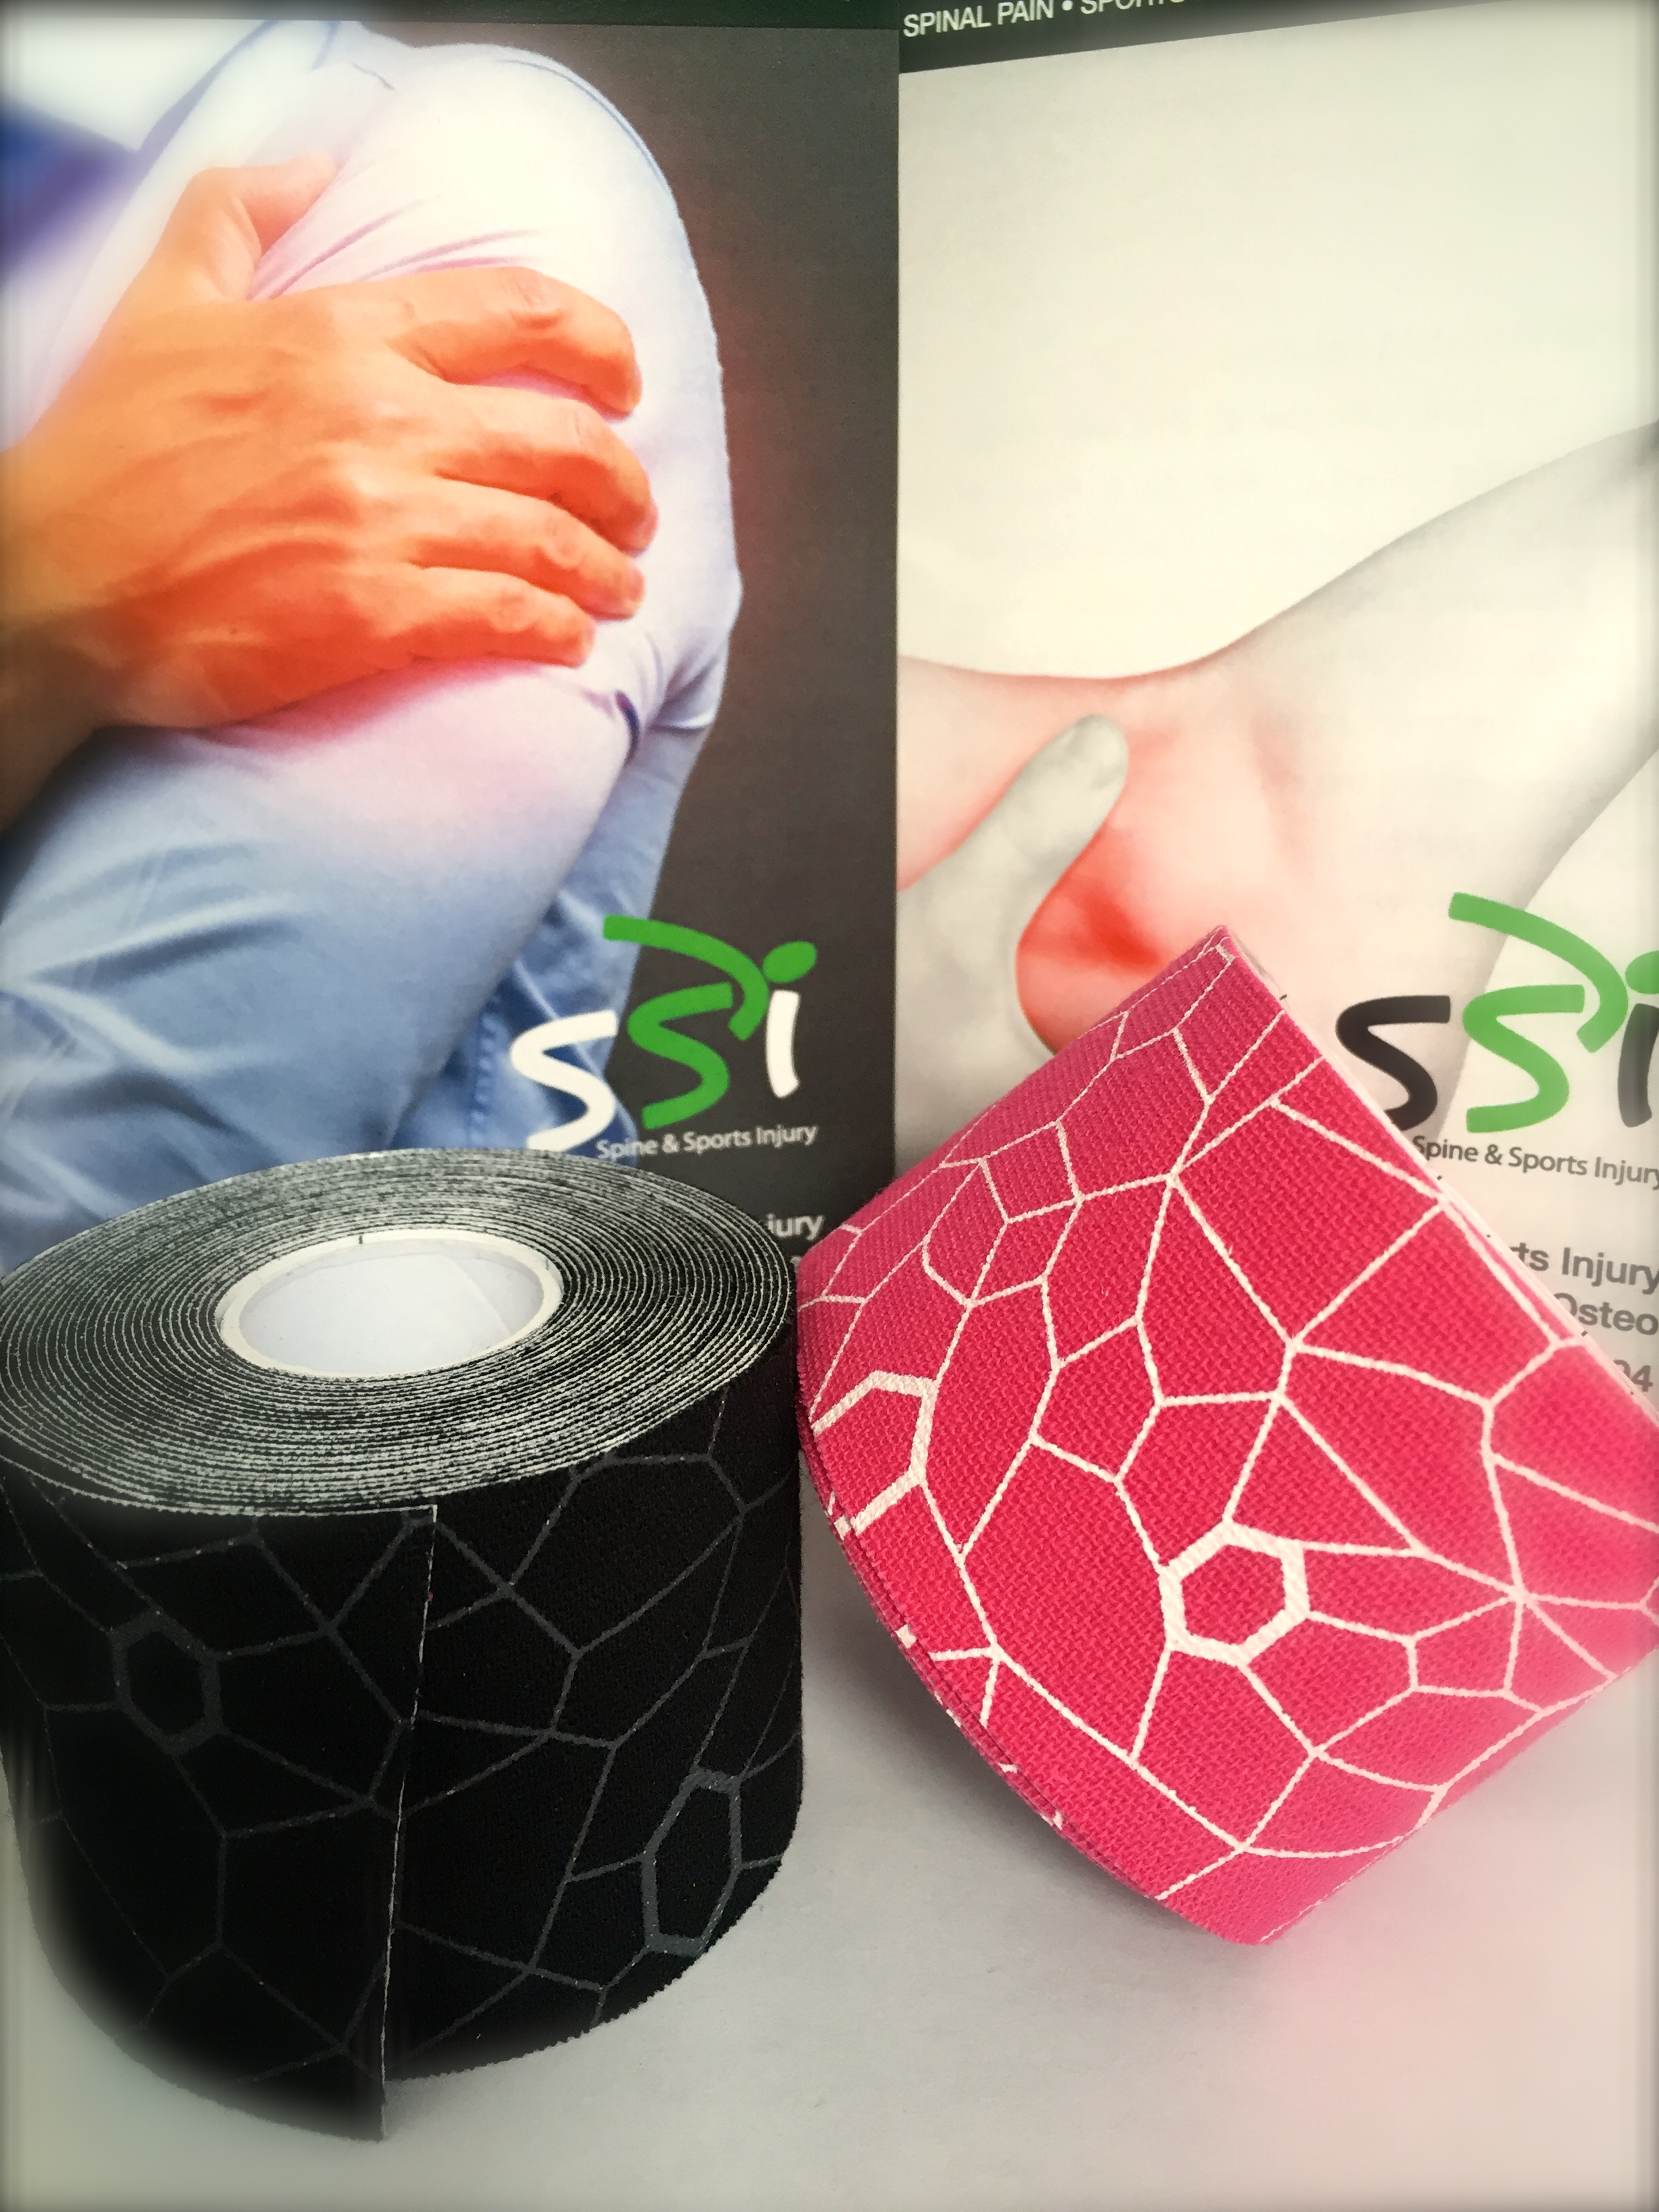 Spine and Sports Injury Sports Tape